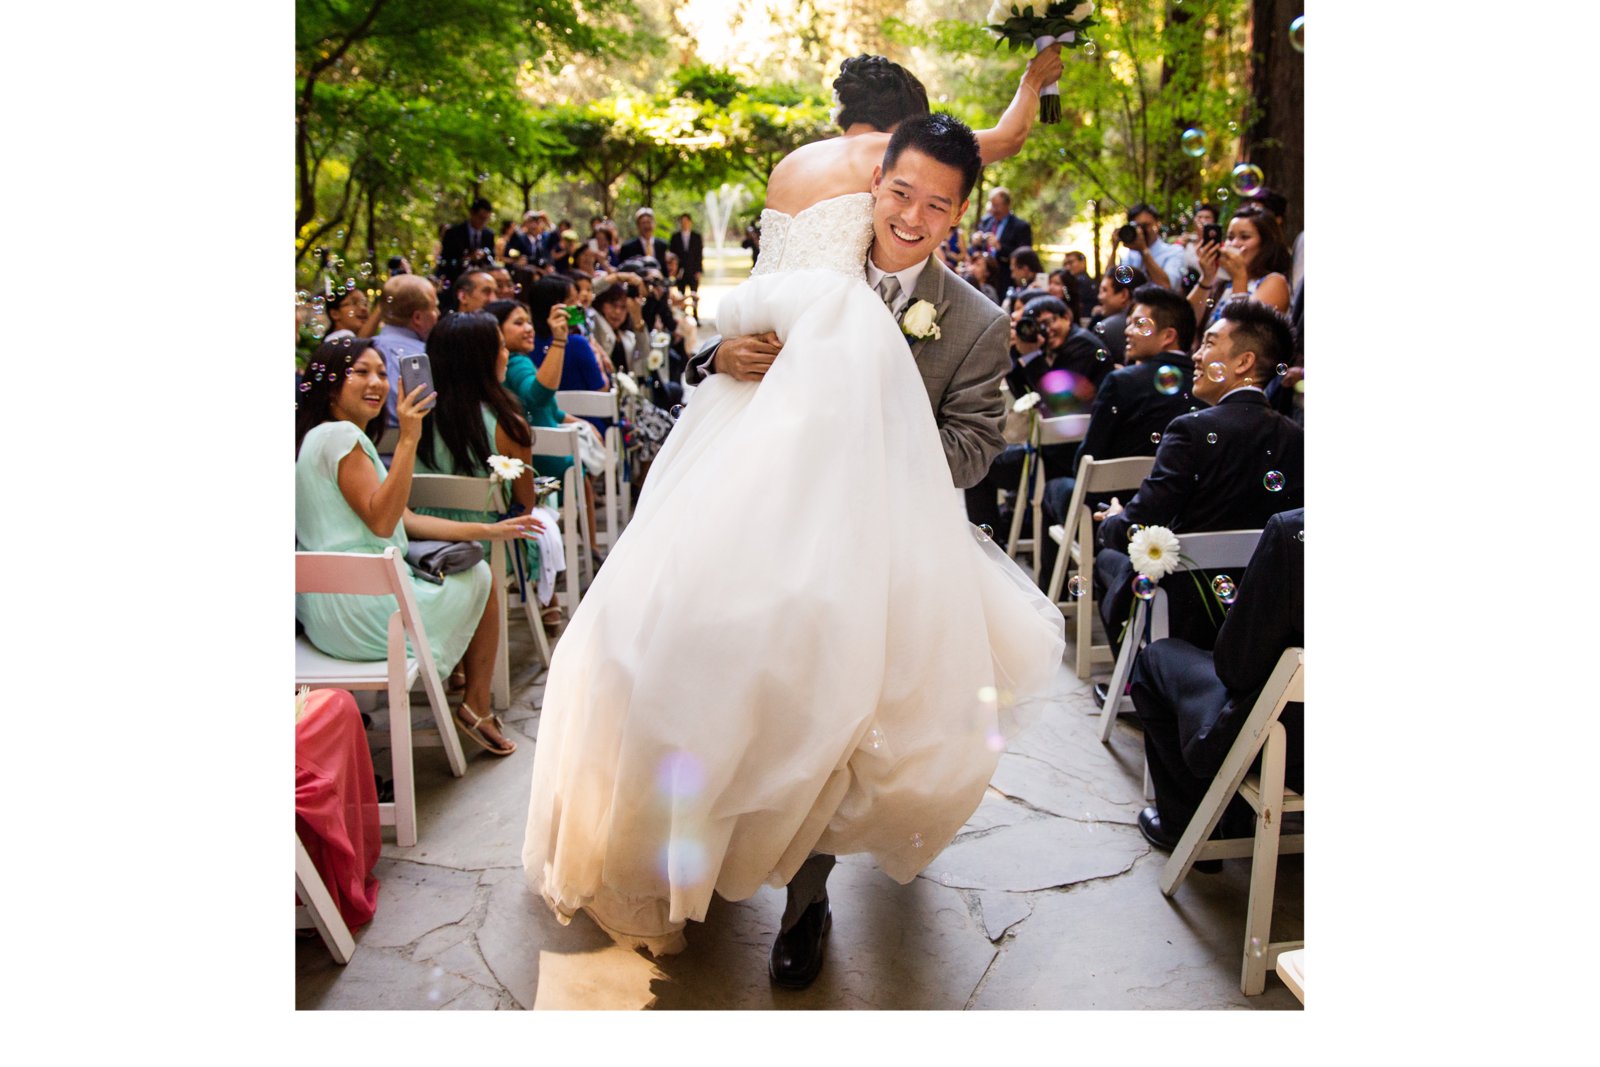 nestldown wedding forest los gatos california 8